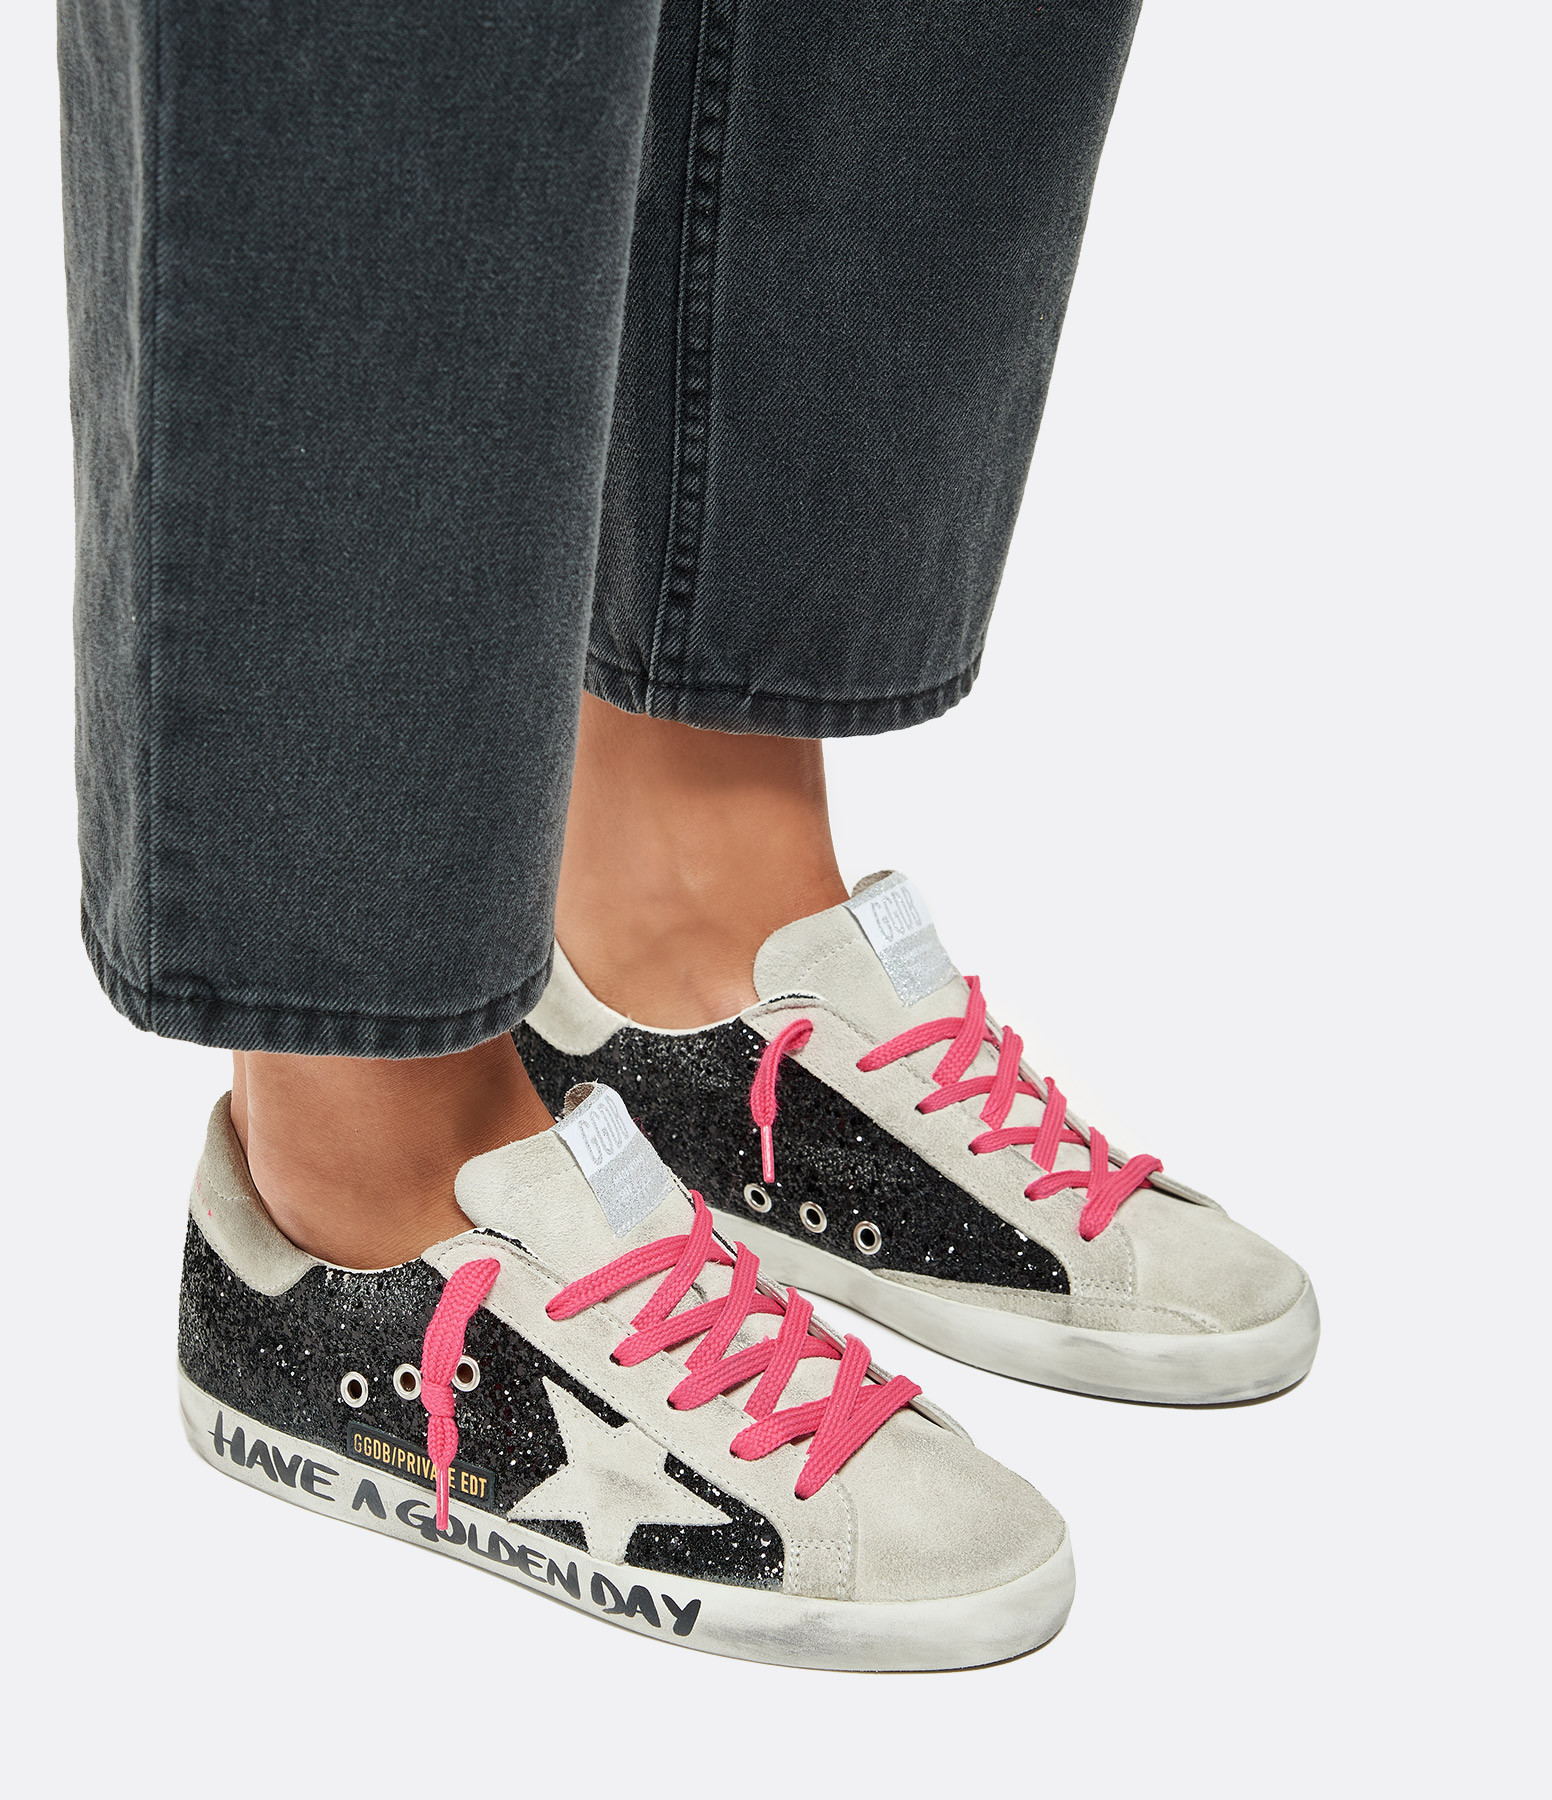 GOLDEN GOOSE - Baskets Superstar Cuir Glitter, Exclusivité Lulli